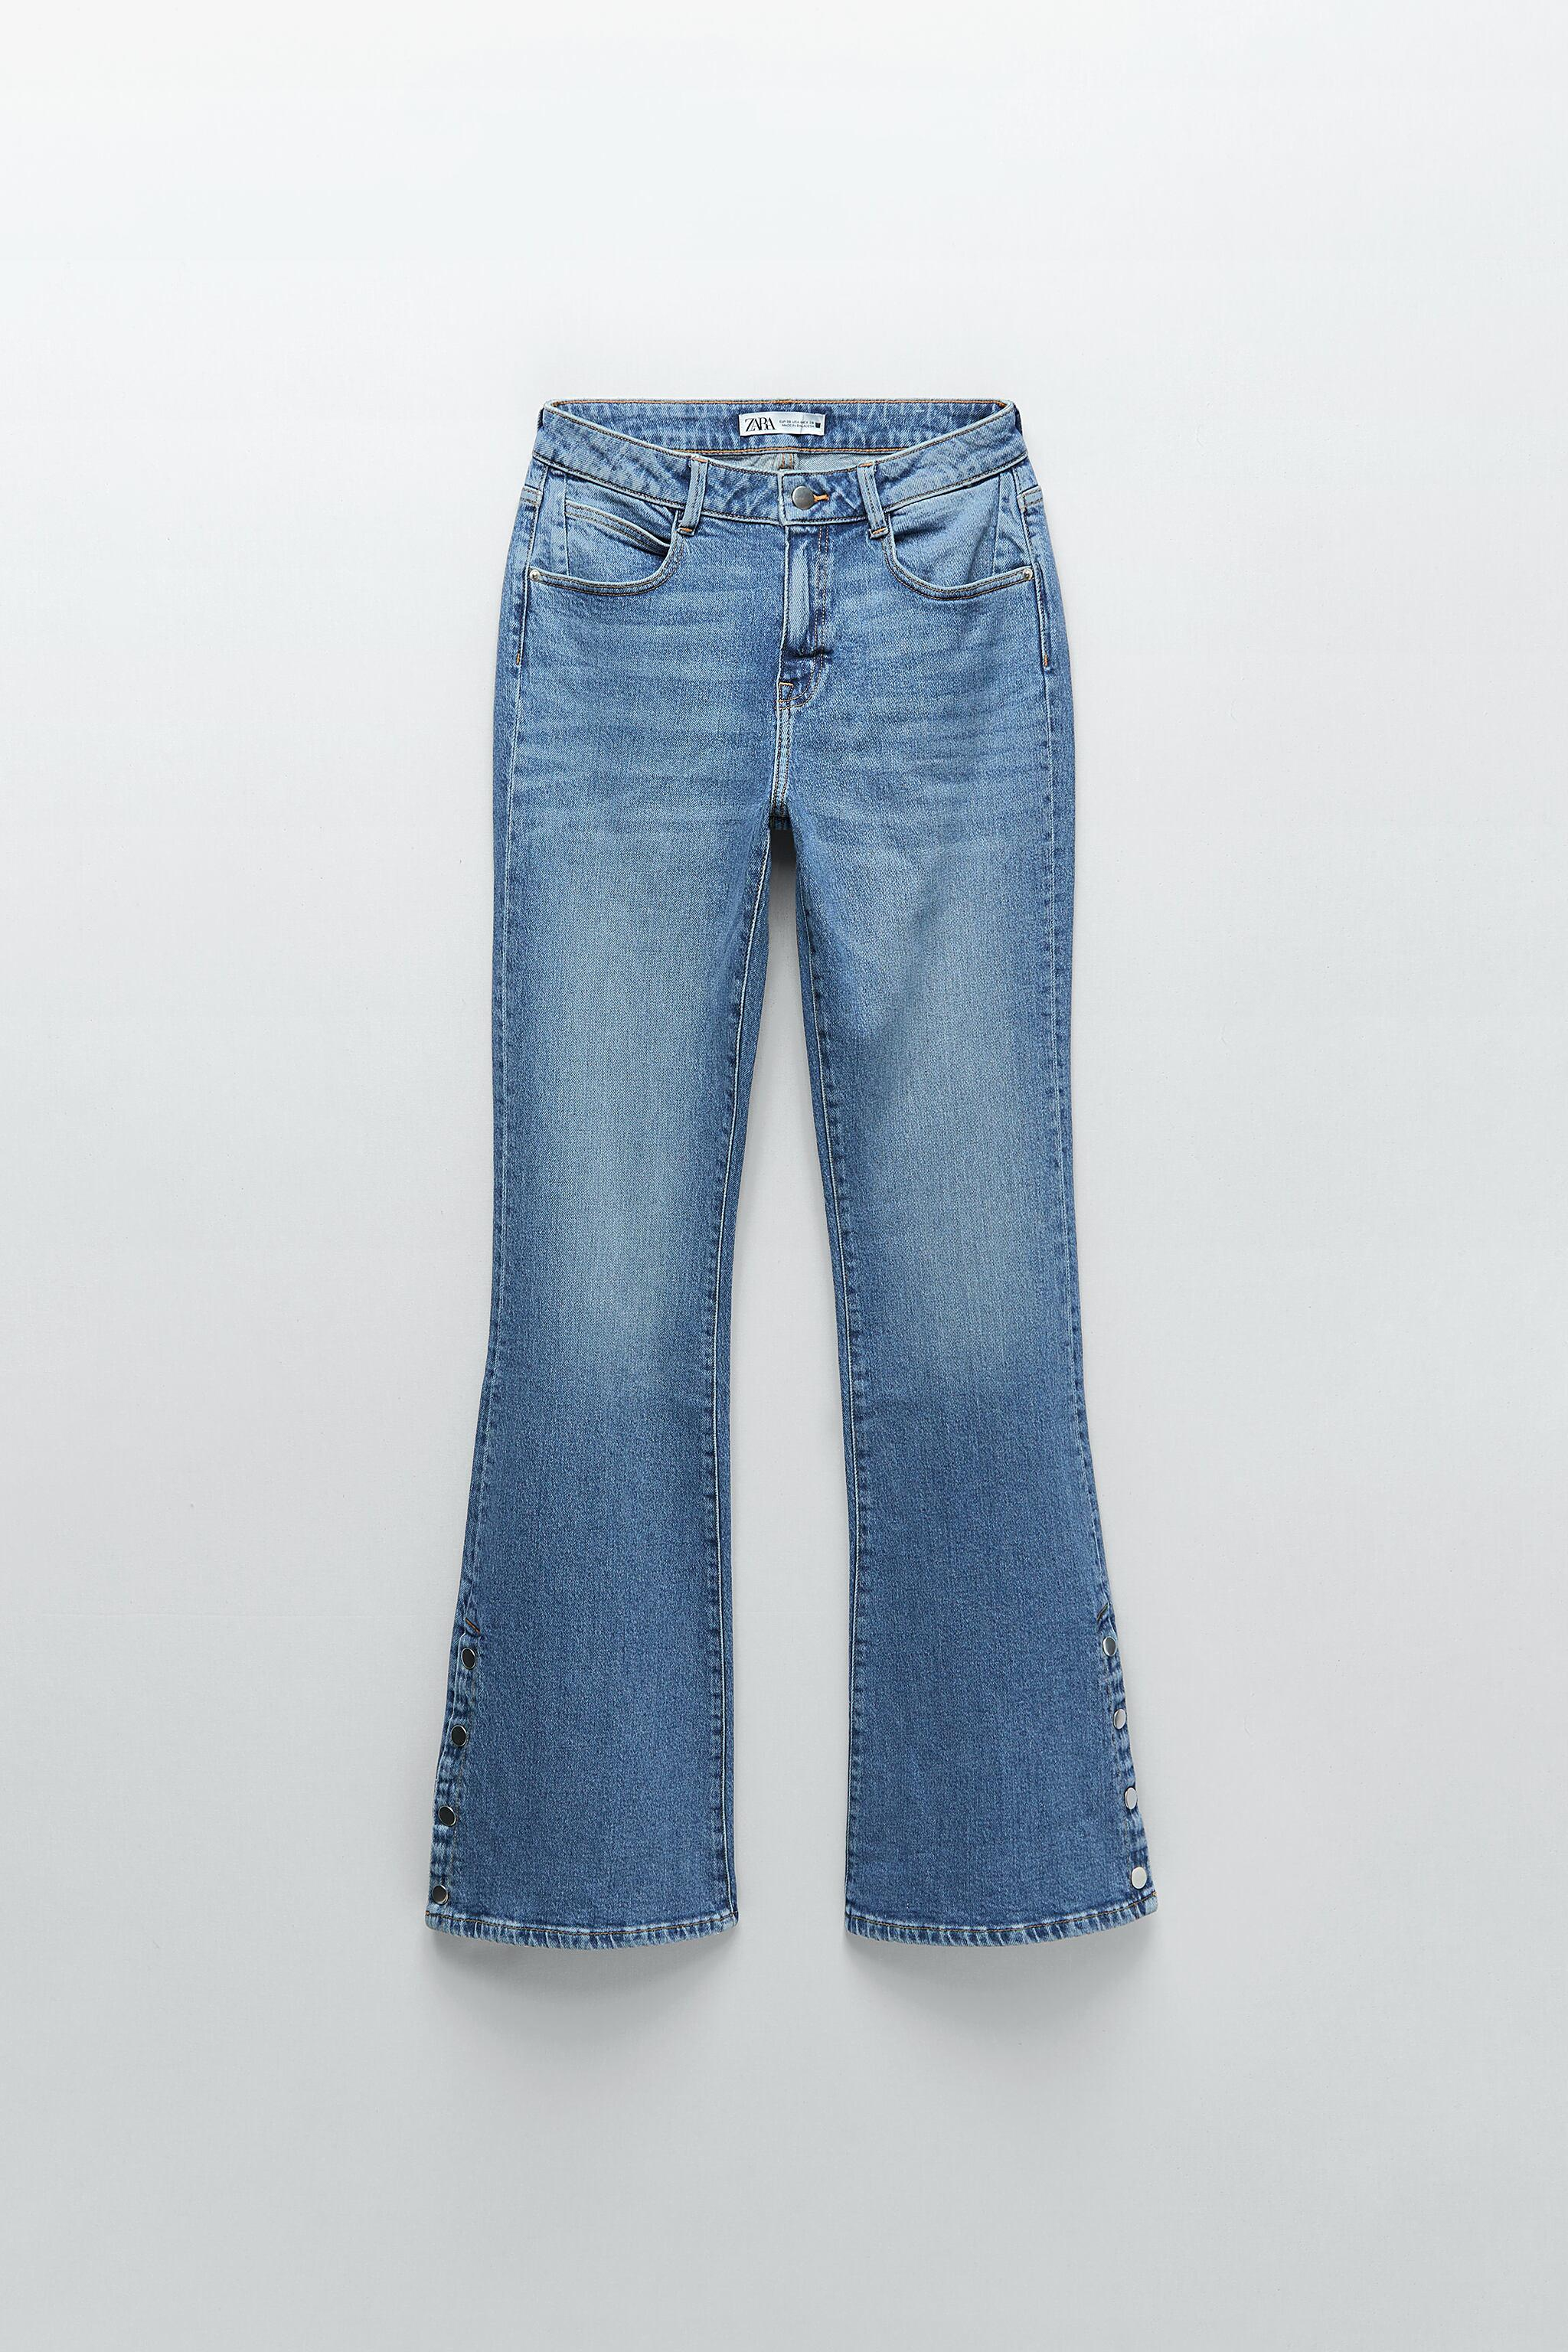 Z1975 HIGH RISE BUTTON FLY FLARED JEANS 3